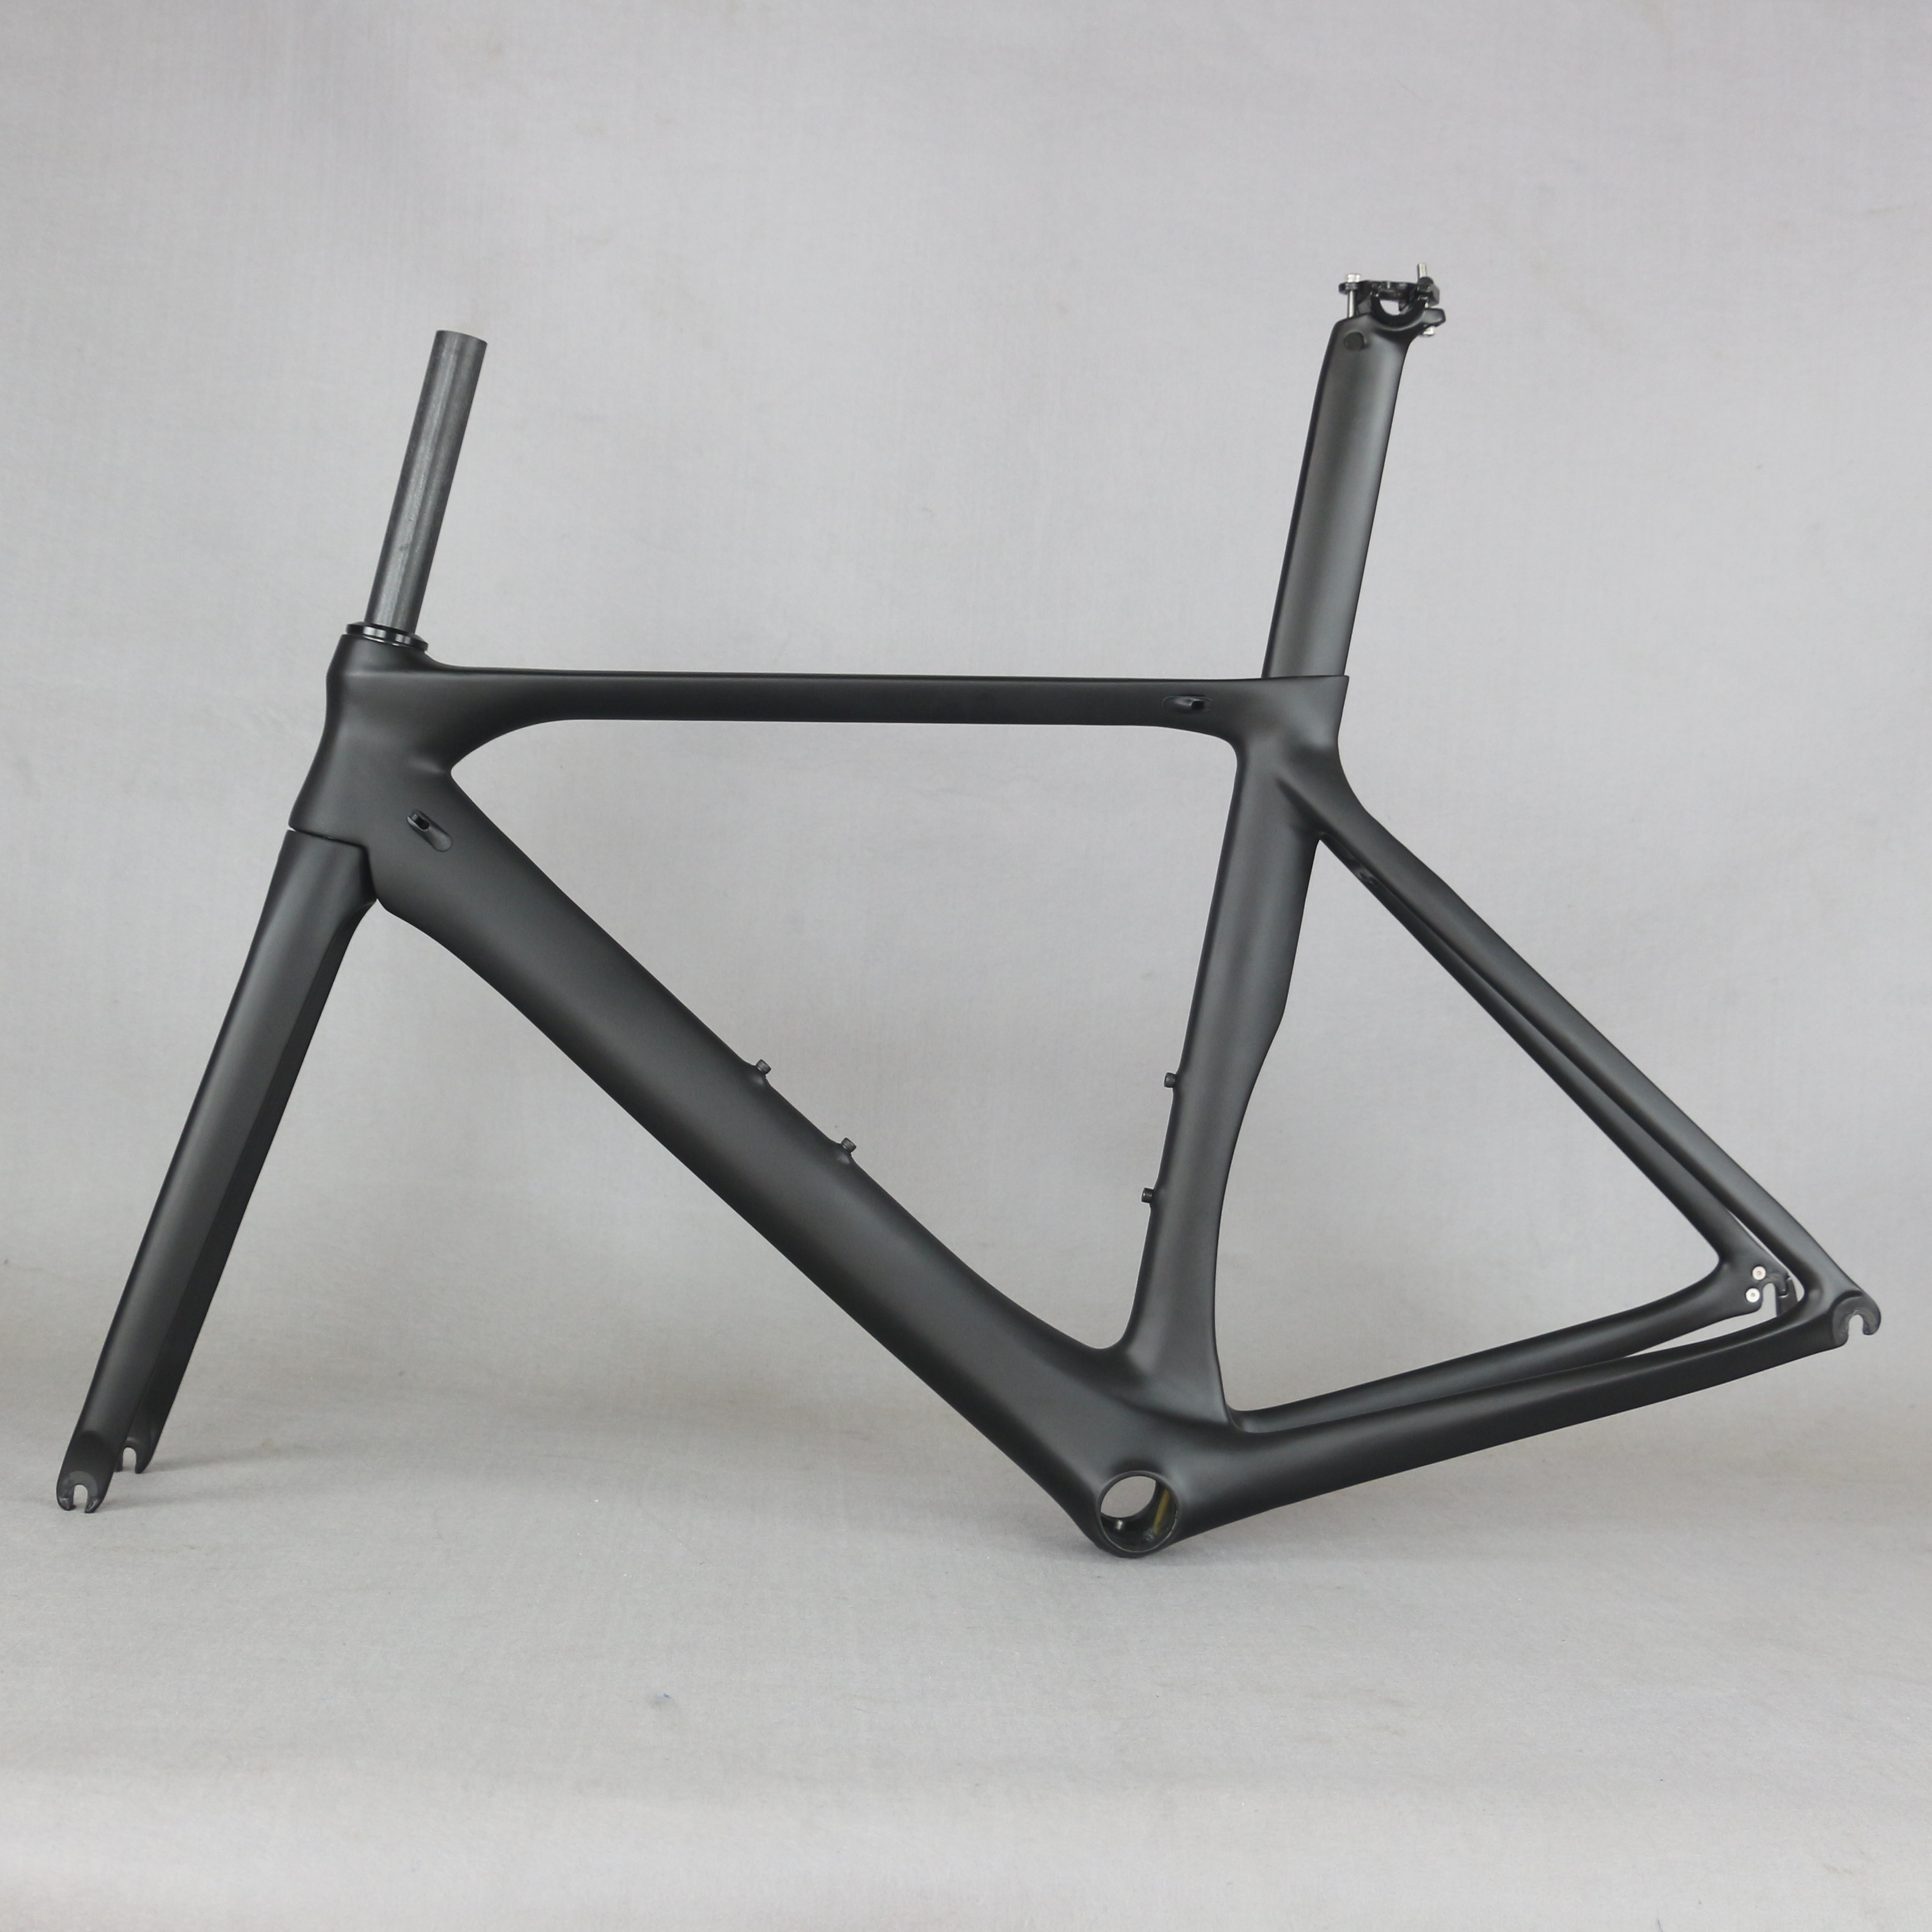 2020 New Carbon Road Bike Frame  Road Cycling Bicycle Frameset  Oem Brand Frame Clearance Frame Fork Seatpost Carbon Frame